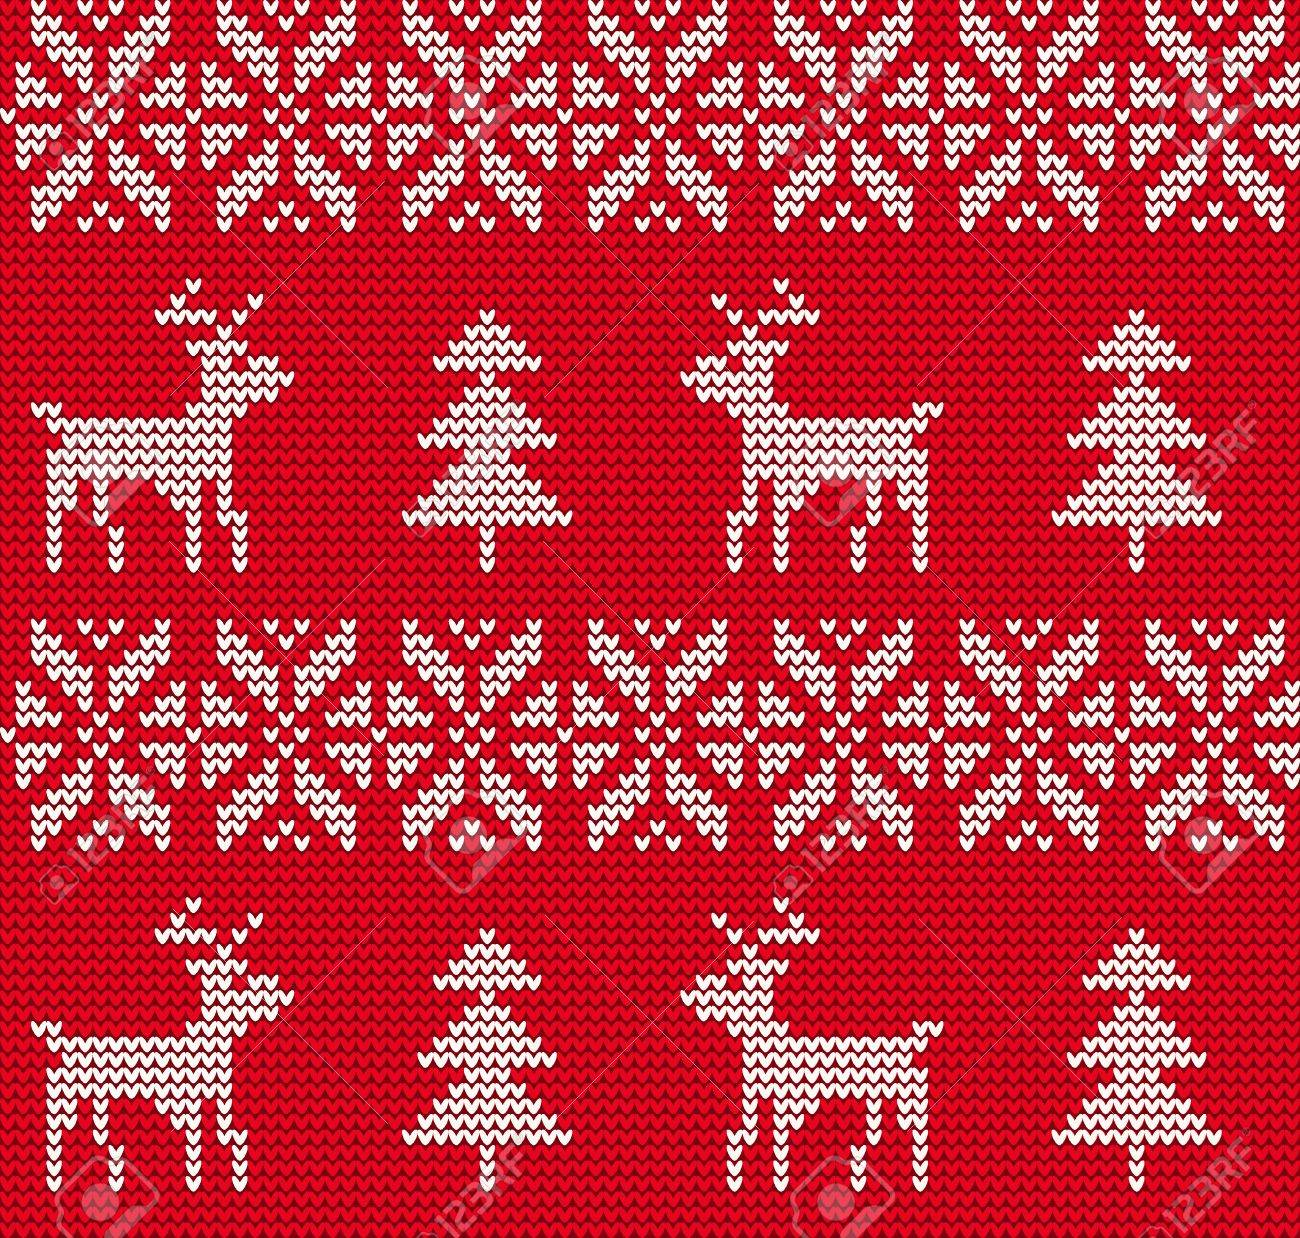 Vector Illustration of Ugly sweater seamless Pattern for Design, Website, Background, Banner. Merry christmas Knitted Retro cloth with Snowflake Element Template - 49450934